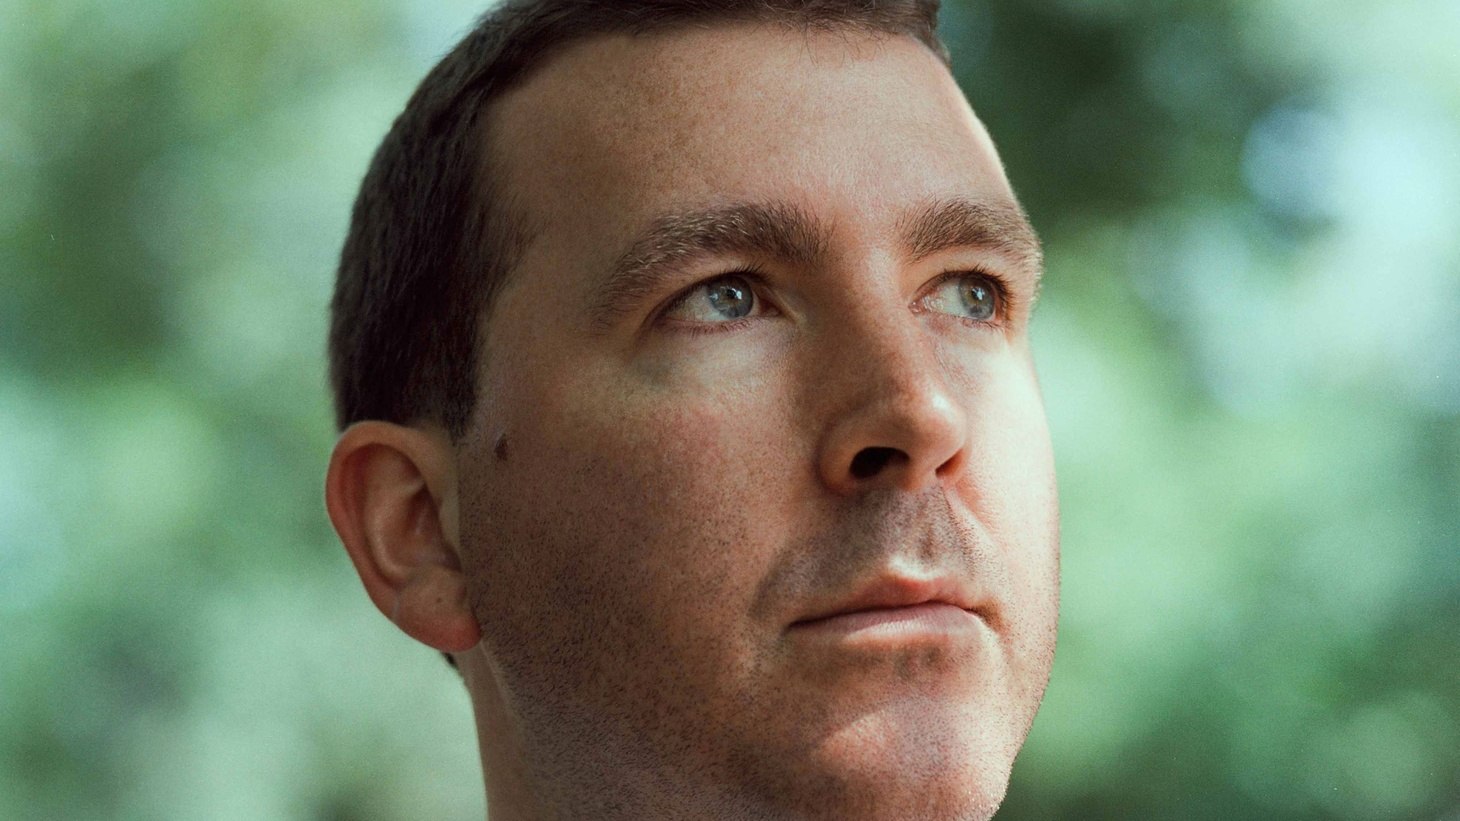 Hot Chip co-founder, 2 Bears member and Grammy-nominated producer Joe Goddard combines a thirst for experimentation, an instinctive understanding of the dance floor and a love of left-of-center pop music in his exclusive mix for Metropolis.